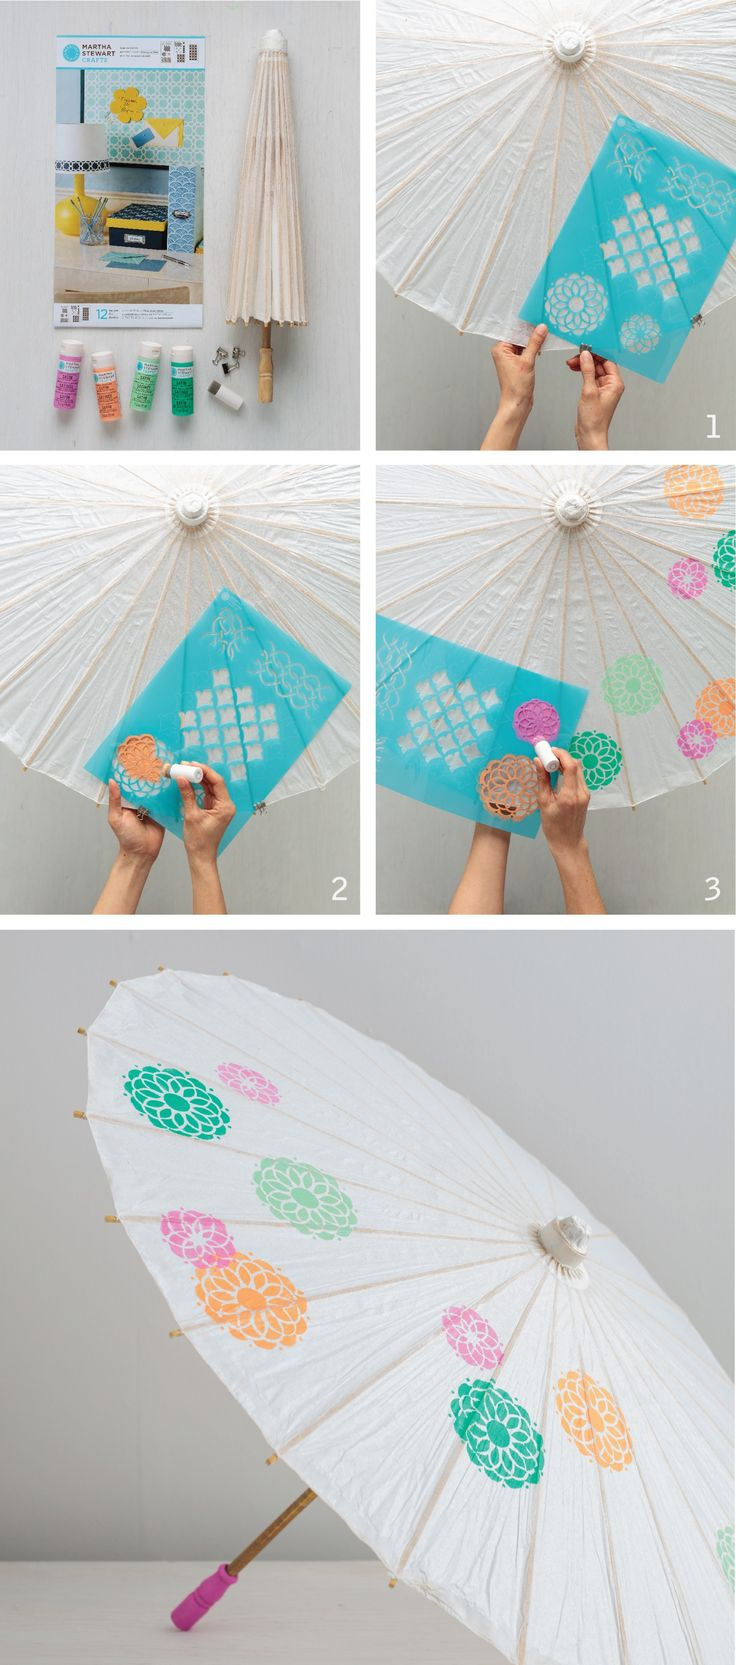 250 best Paint Crafts images on Pinterest | Crafts for kids, Crafts ...